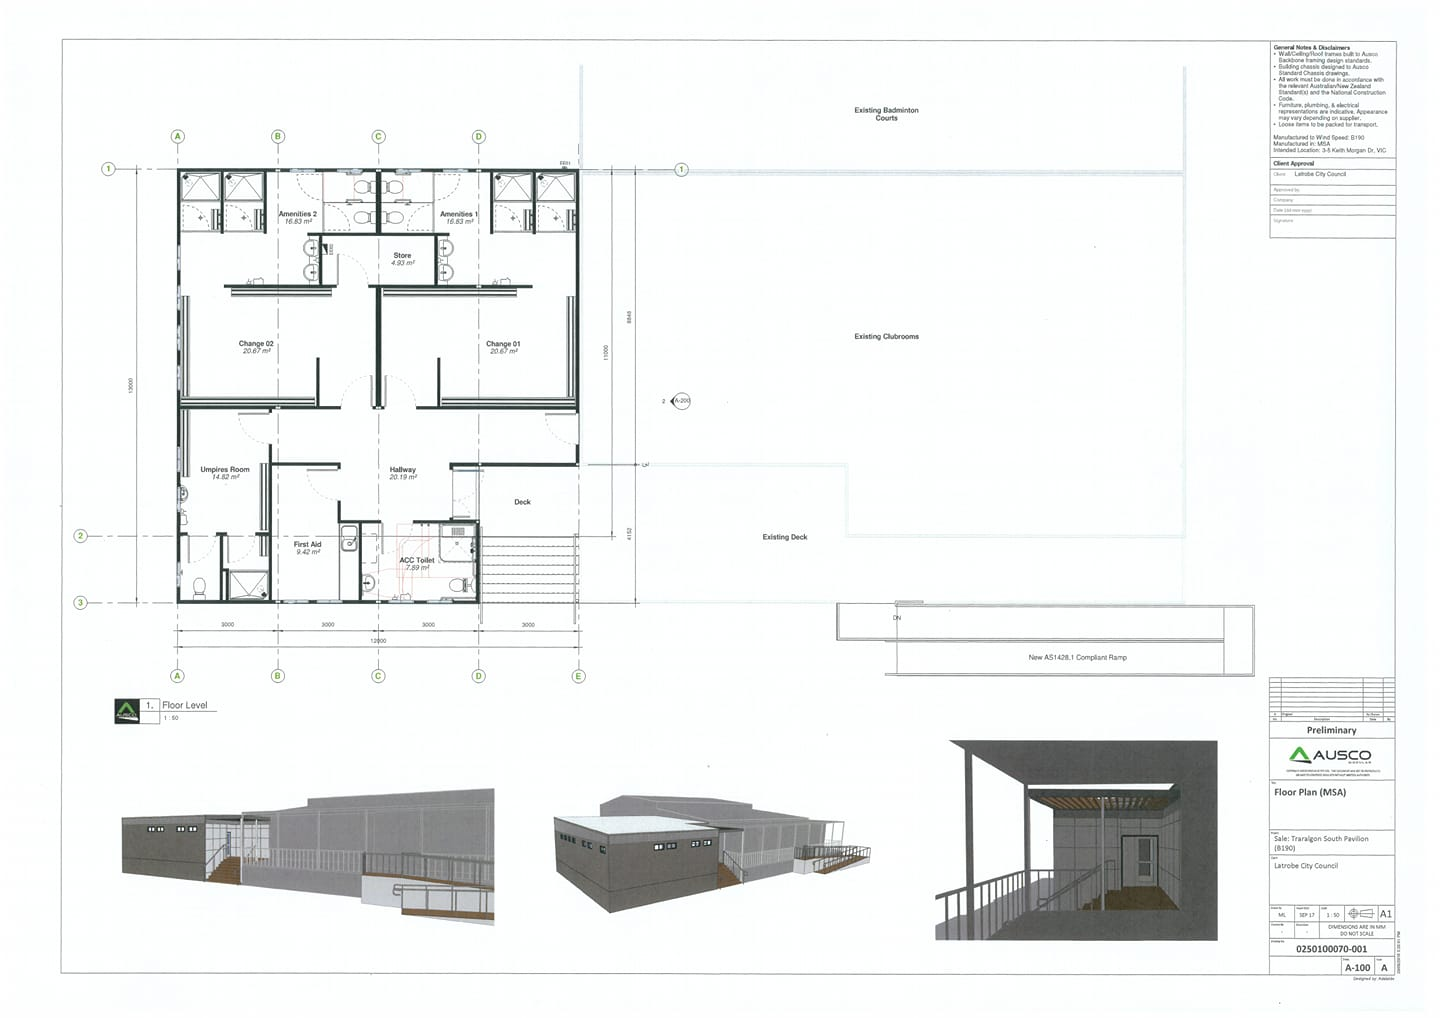 Clubrooms Floor Plan and 3D Image.jpg